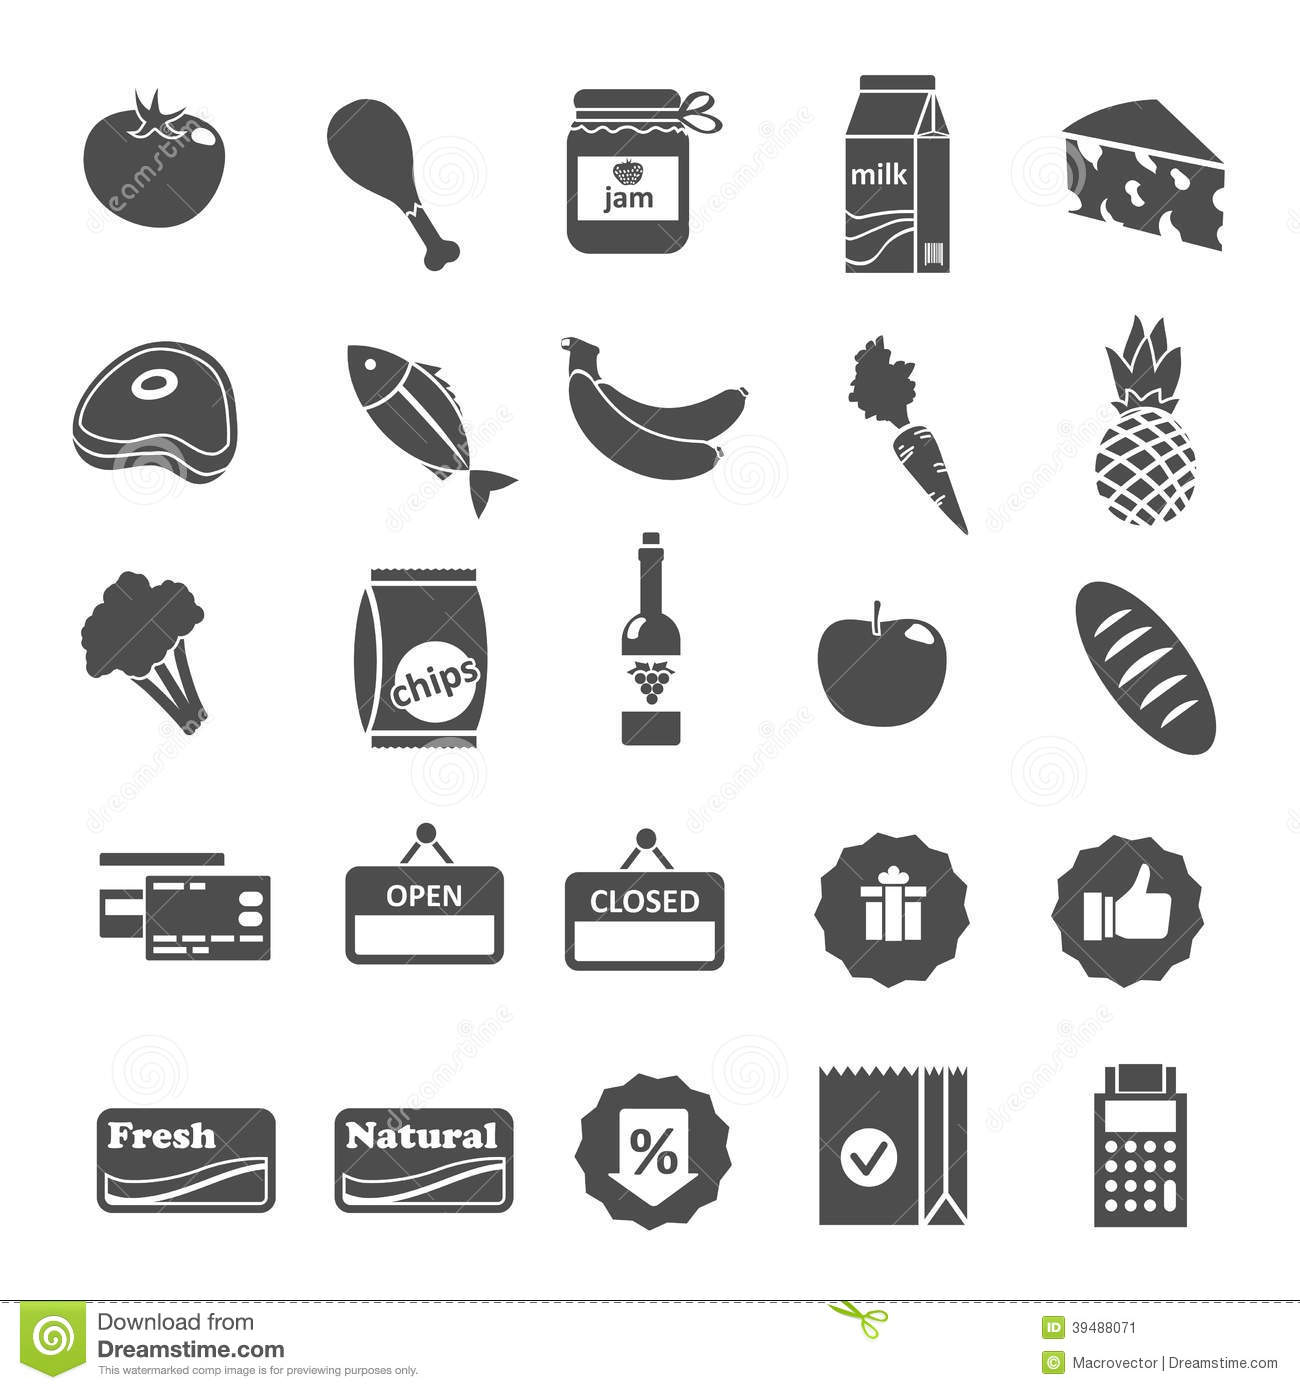 18 Grocery Products Icon Images - Food and Chemical ...